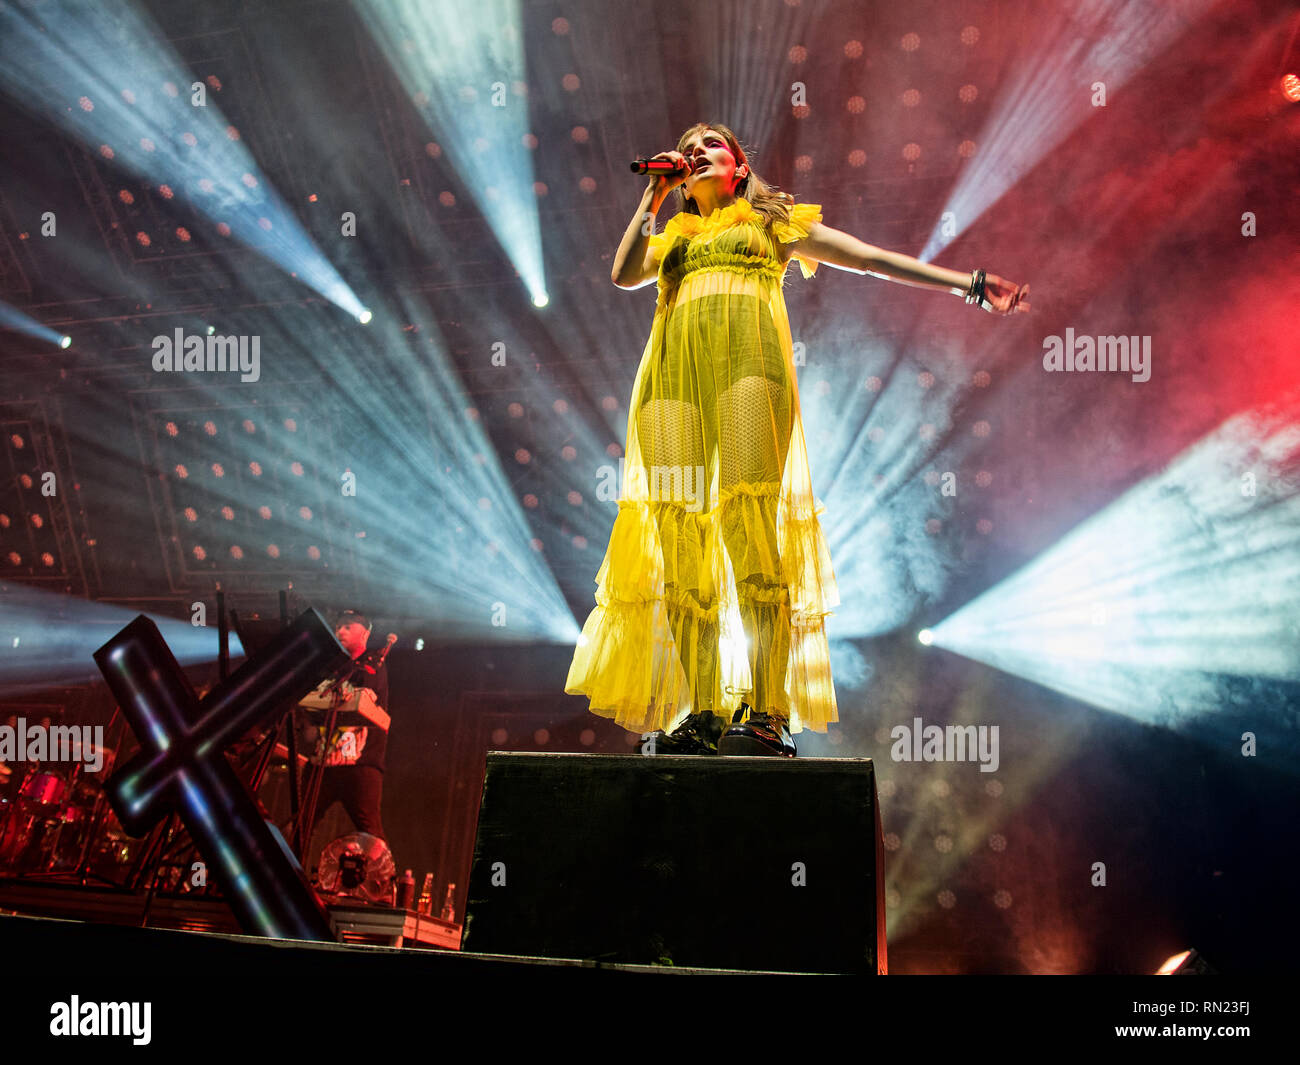 Glasgow, Scotland, UK. 16th February, 2019. Glasgow Synth Pop band Chvrches perform at the SSE Hydro. Credit: Stuart Westwood/Alamy Live News Stock Photo